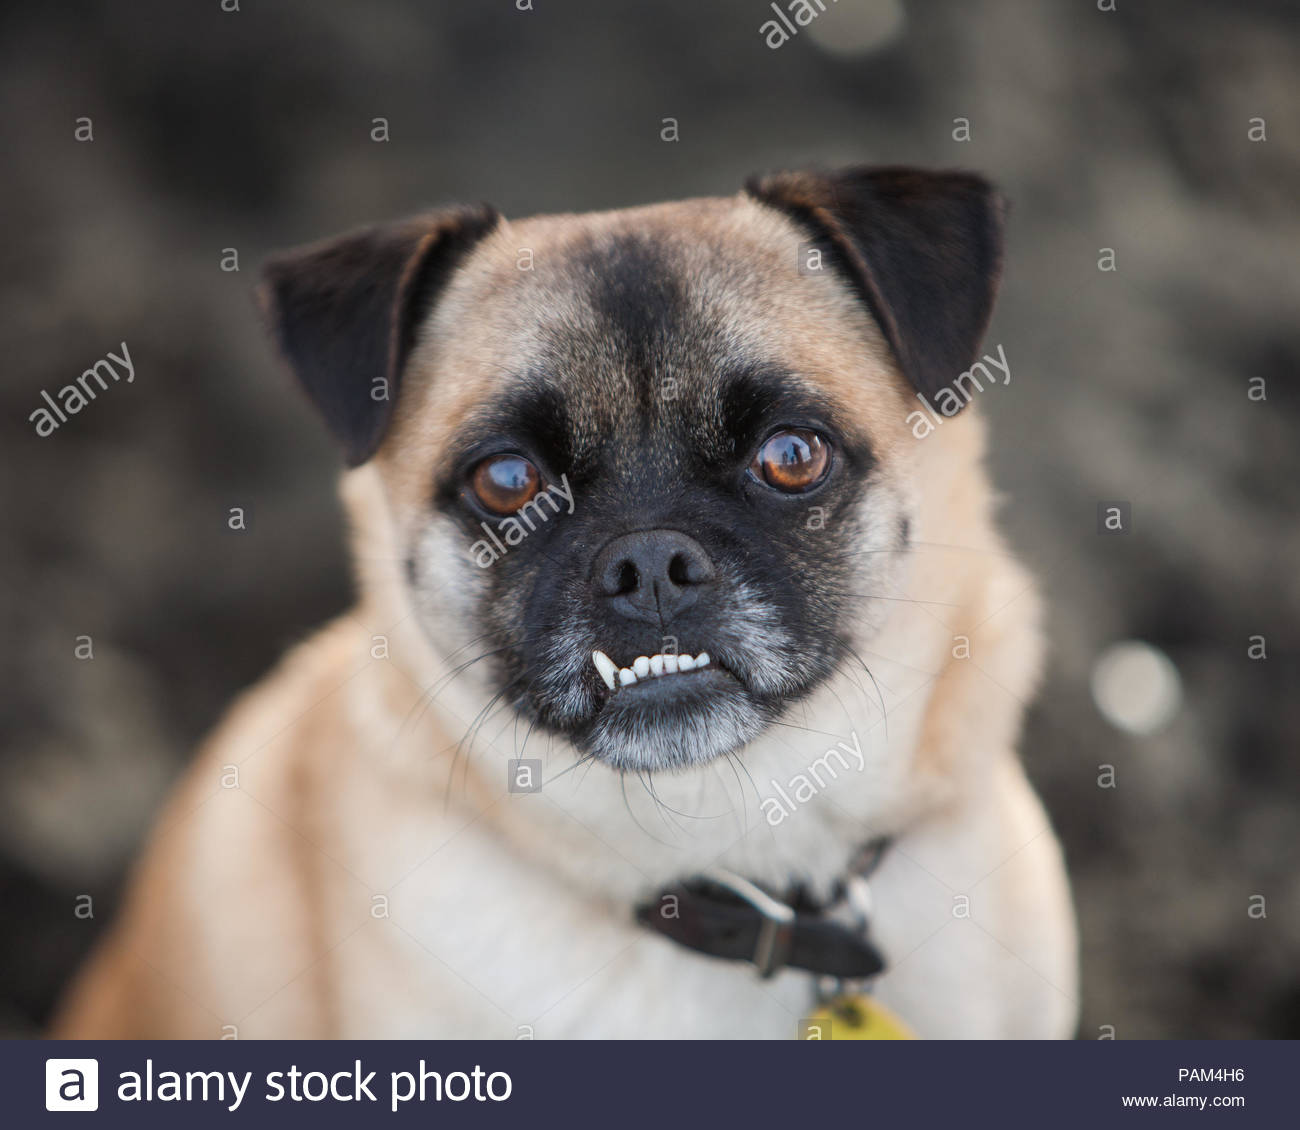 Close-up of tan and black pug mix with underbite and brown eyes - Stock Image